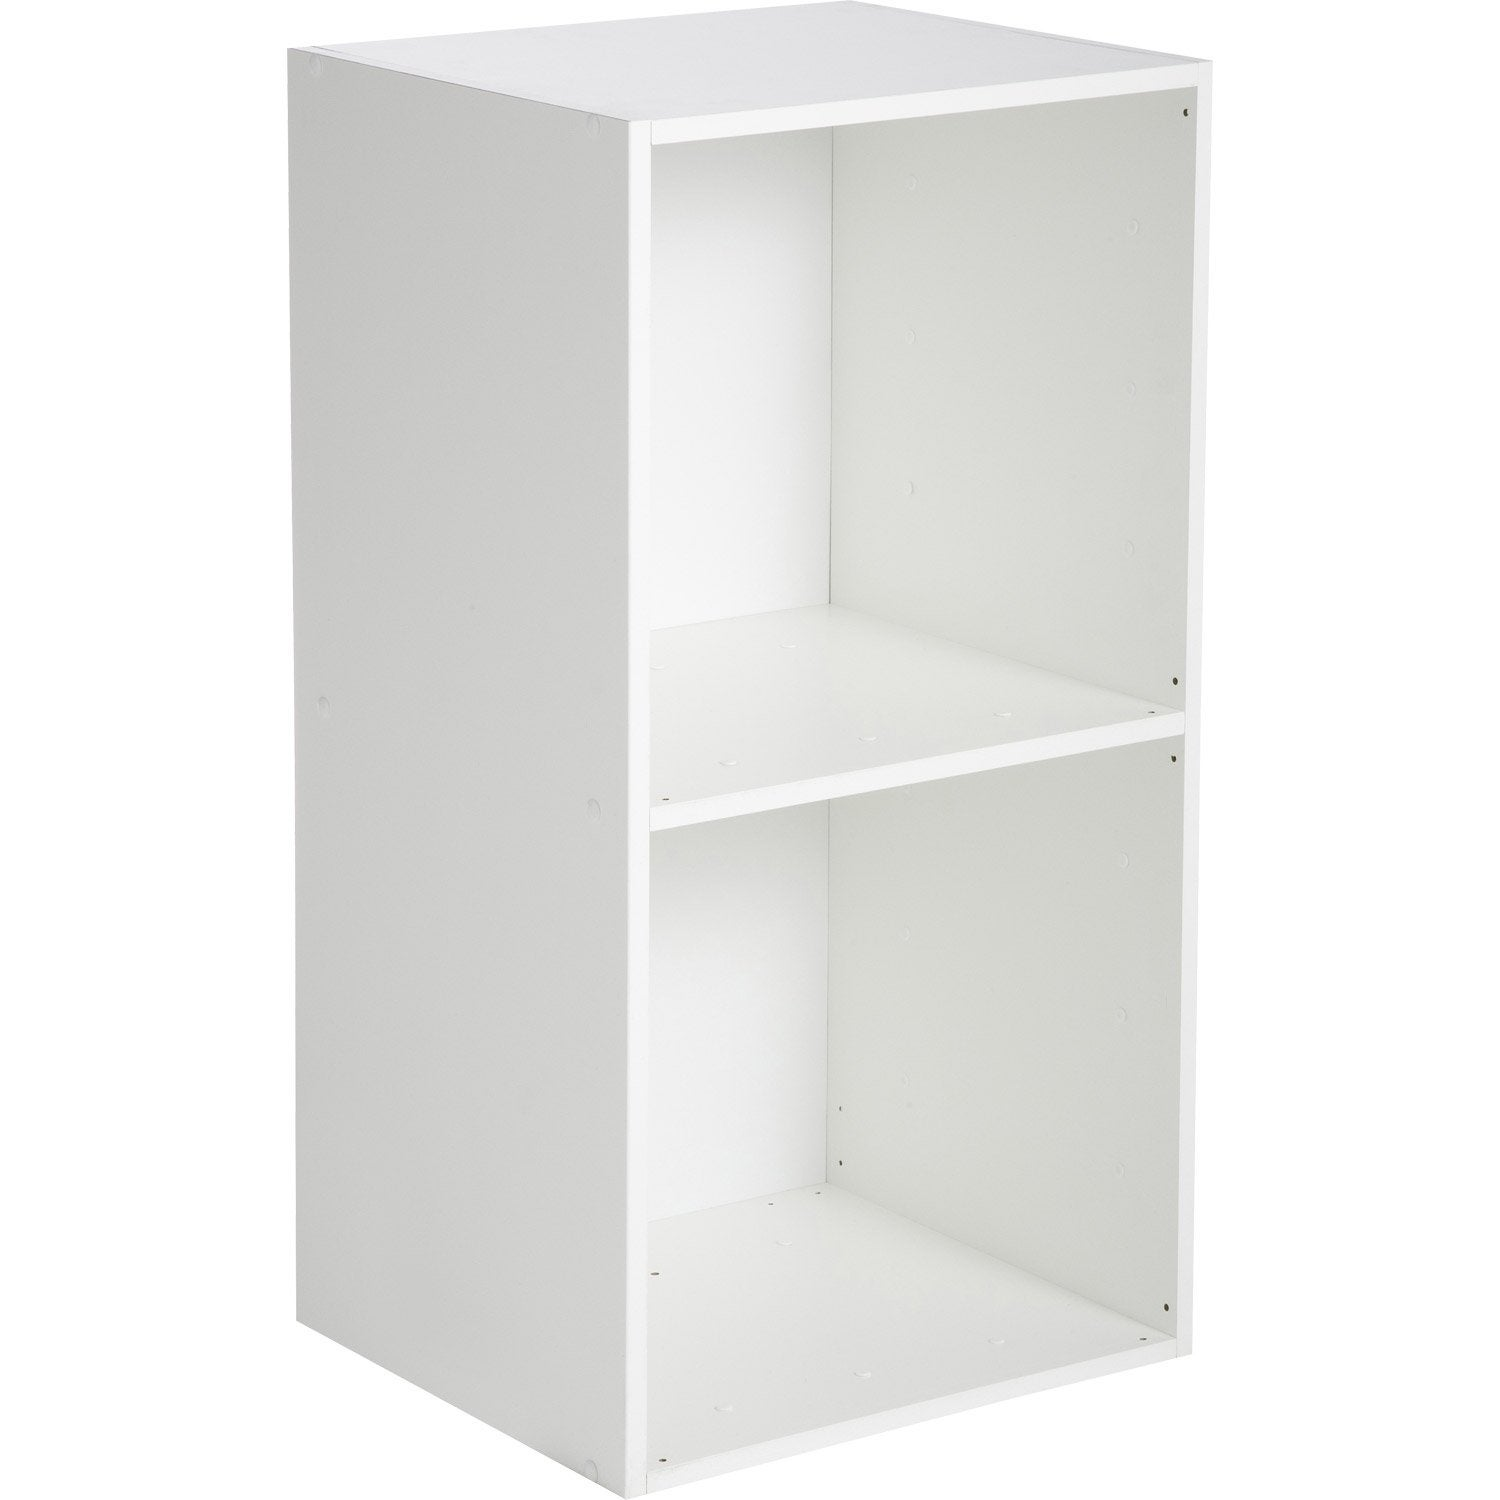 Etag re 2 cases multikaz blanc x x - Meuble de rangement avec casier ...